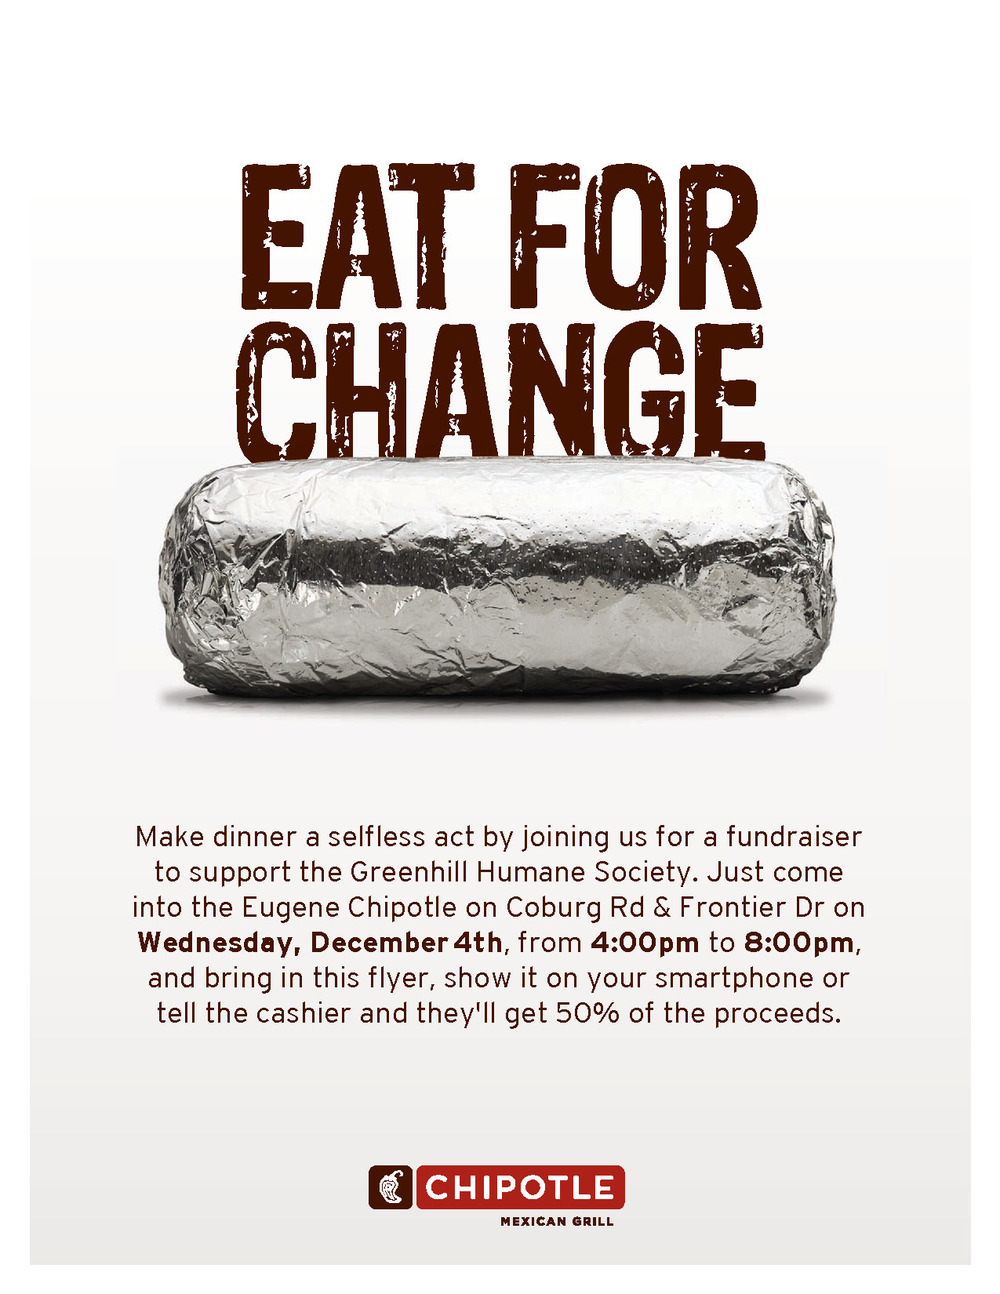 2013 chipotle flyer single December.jpg